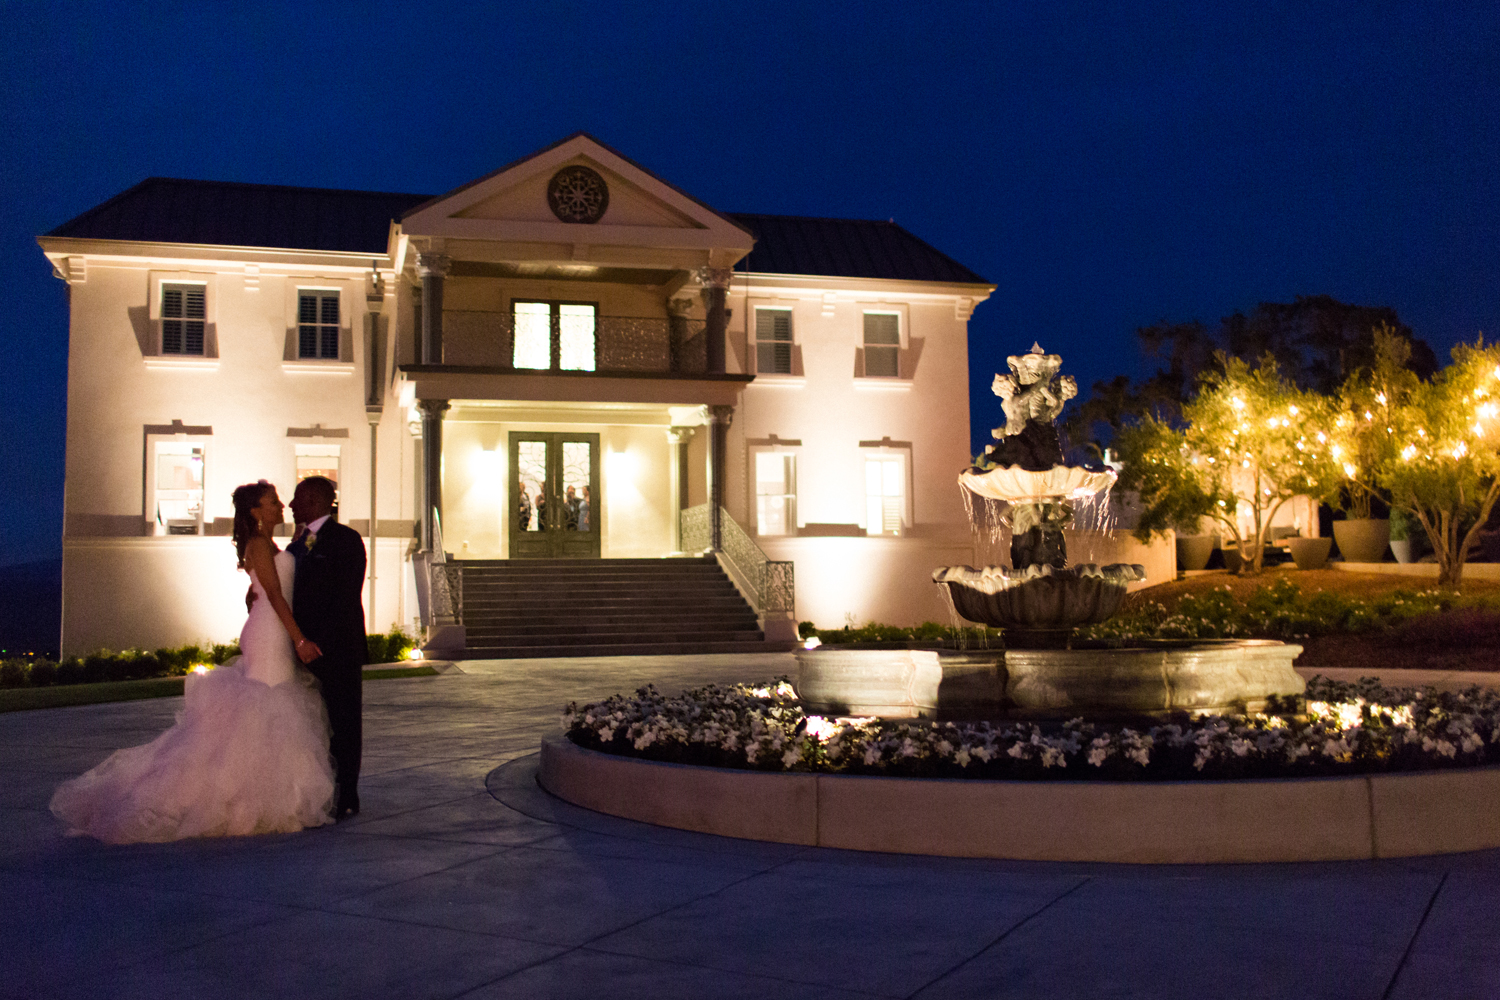 willow-heights-mansion-wedding-photography084.jpg